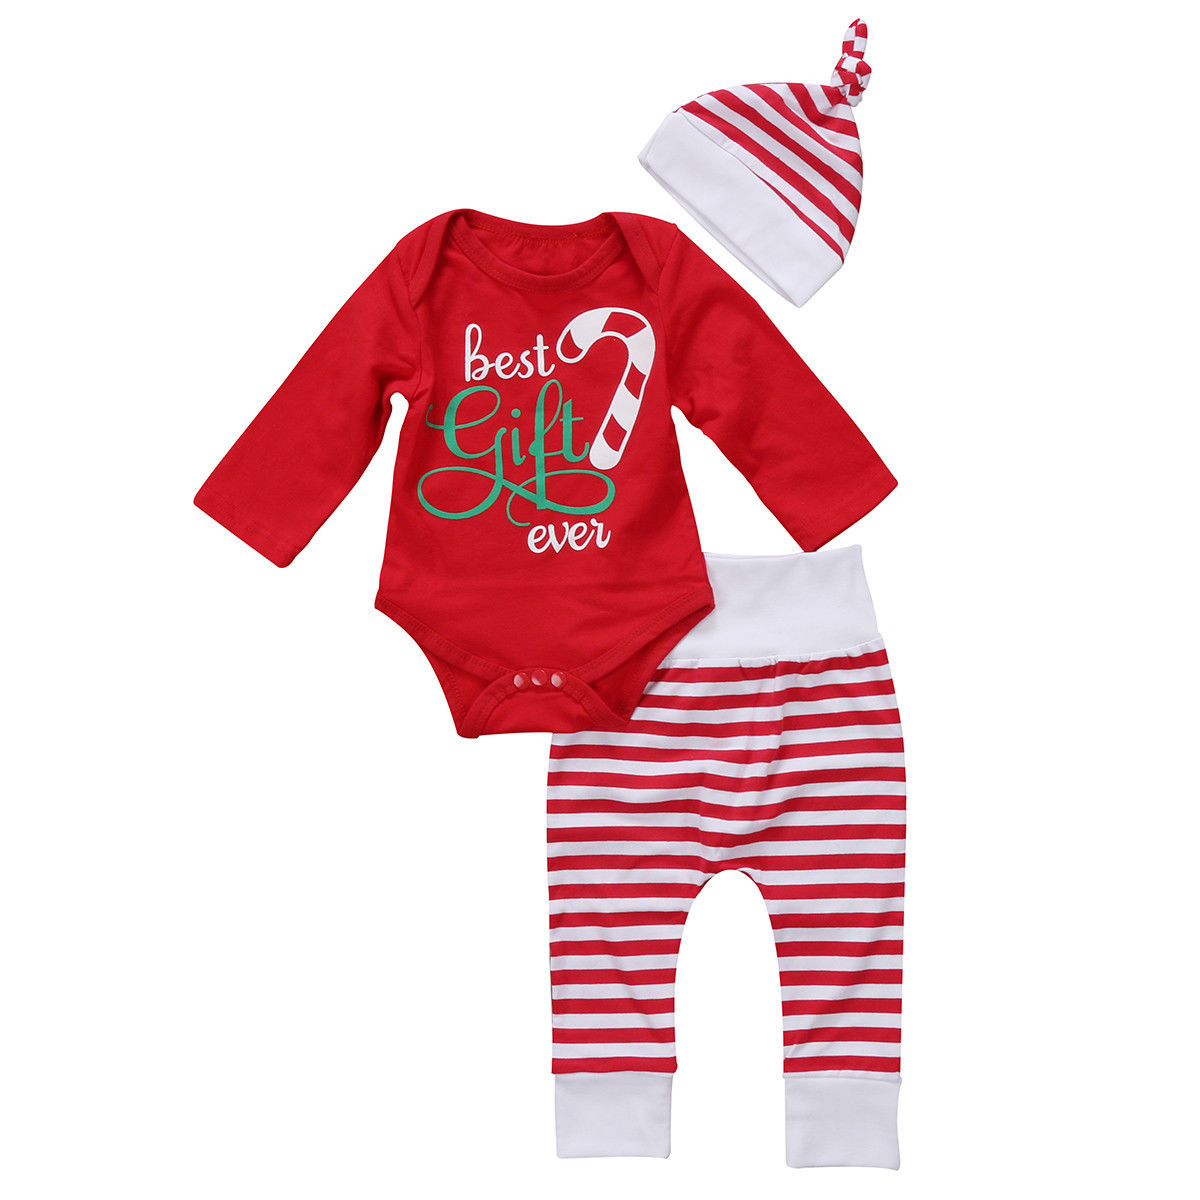 2017 Brand New 3PCS Set Newborn Toddler Infant Baby Girl Boy Clothes Romper Long Sleeve Shirt Tops Pants Hat Santa Candy Outfits humor bear 2017 3pcs newborn infant baby boy clothes tops long sleeve shirt pants boy set baby boy clothes children clothes